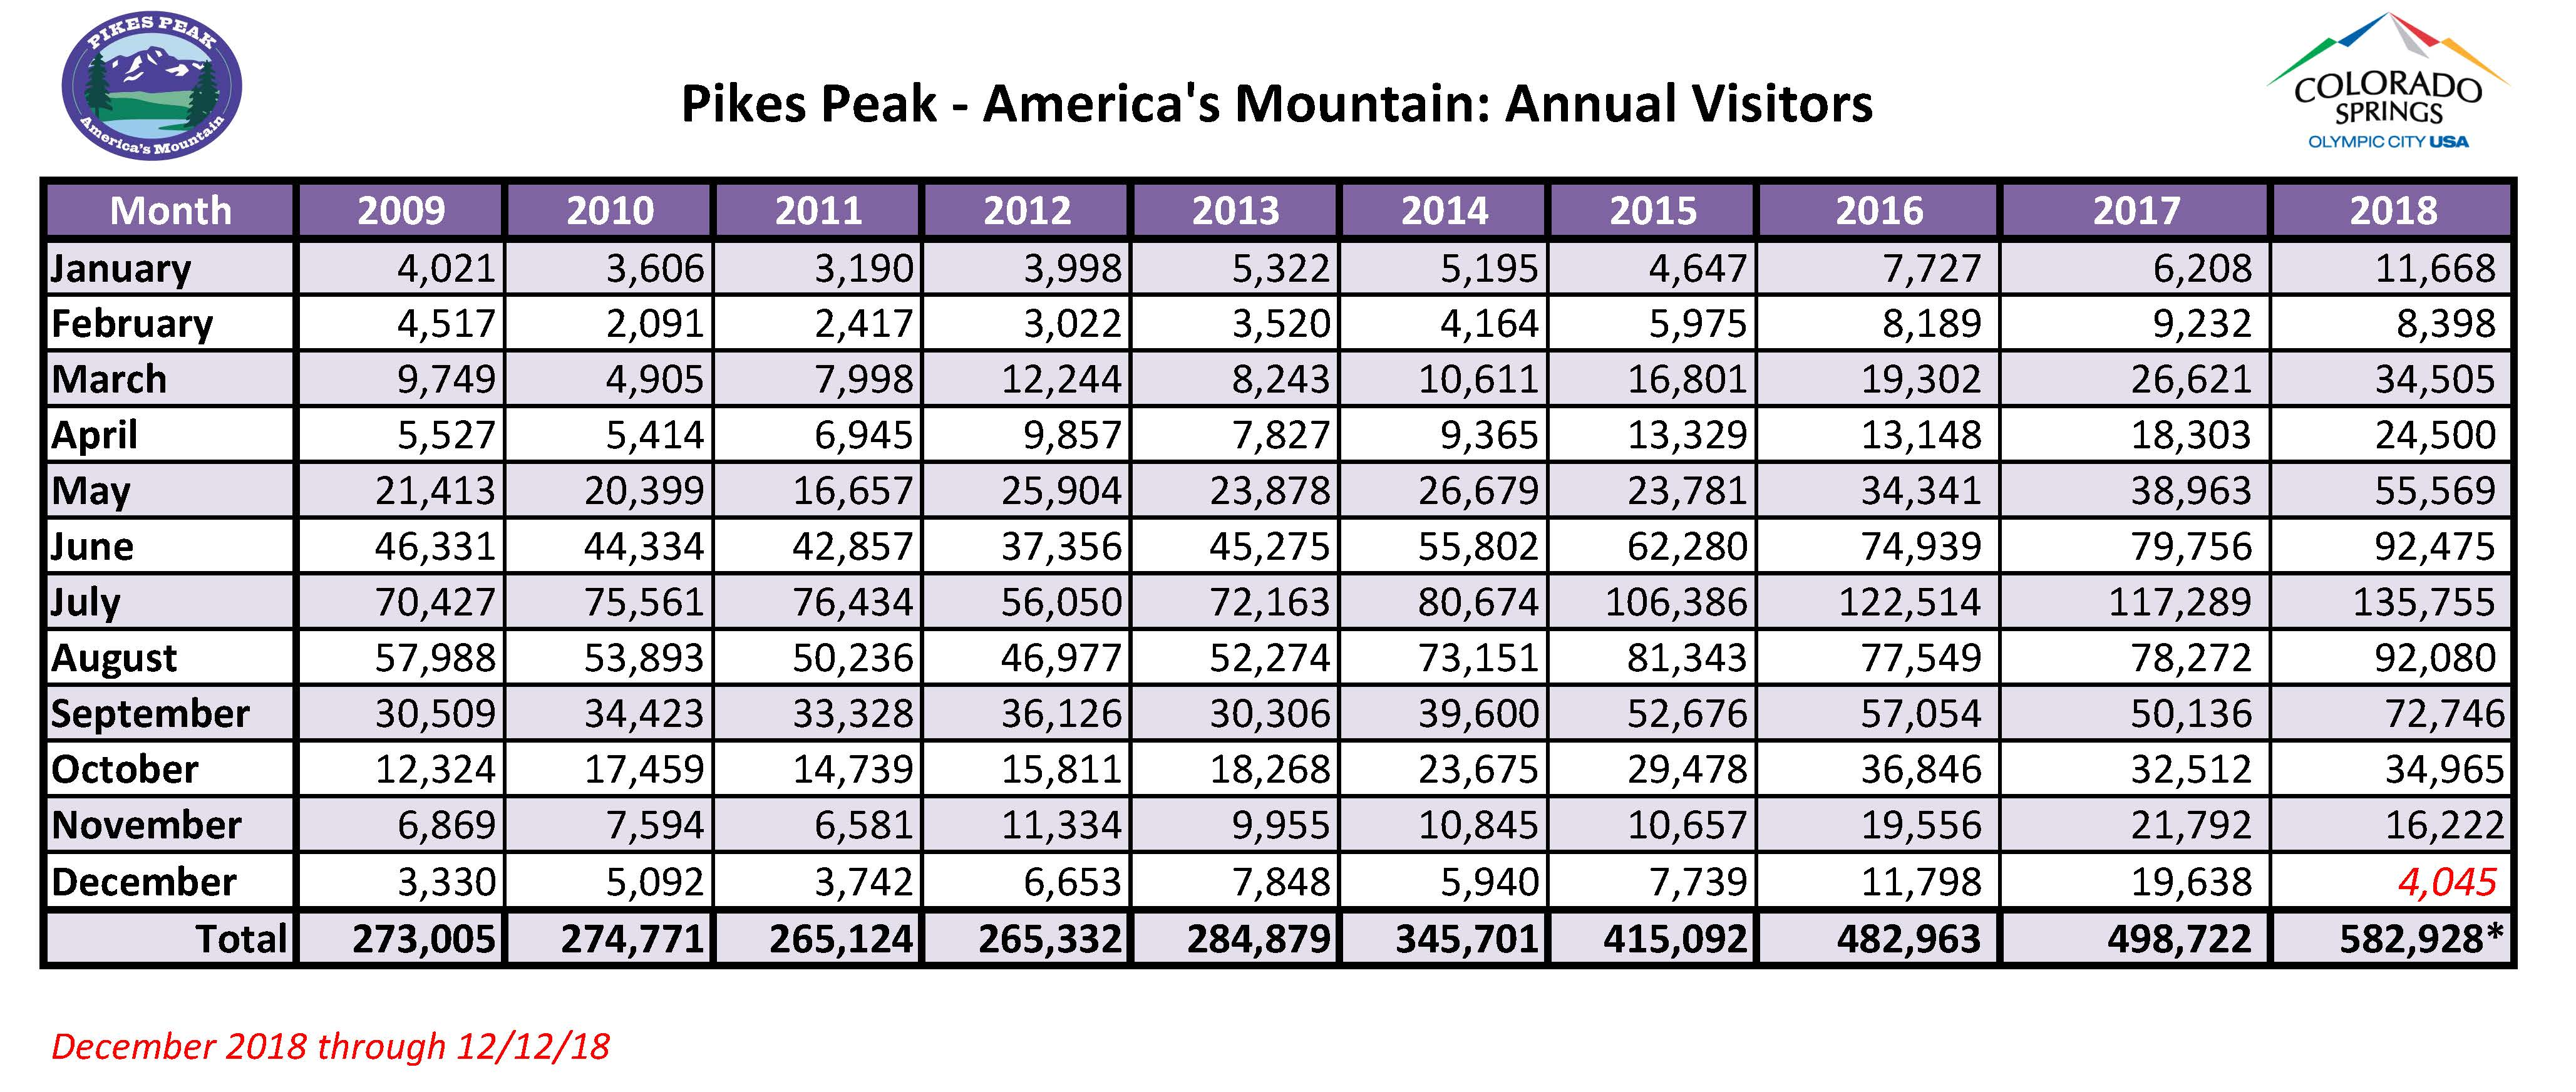 chart showing annual number of visitors from 2009 (273,005 visitors) through 2018 (582,928 visitors)